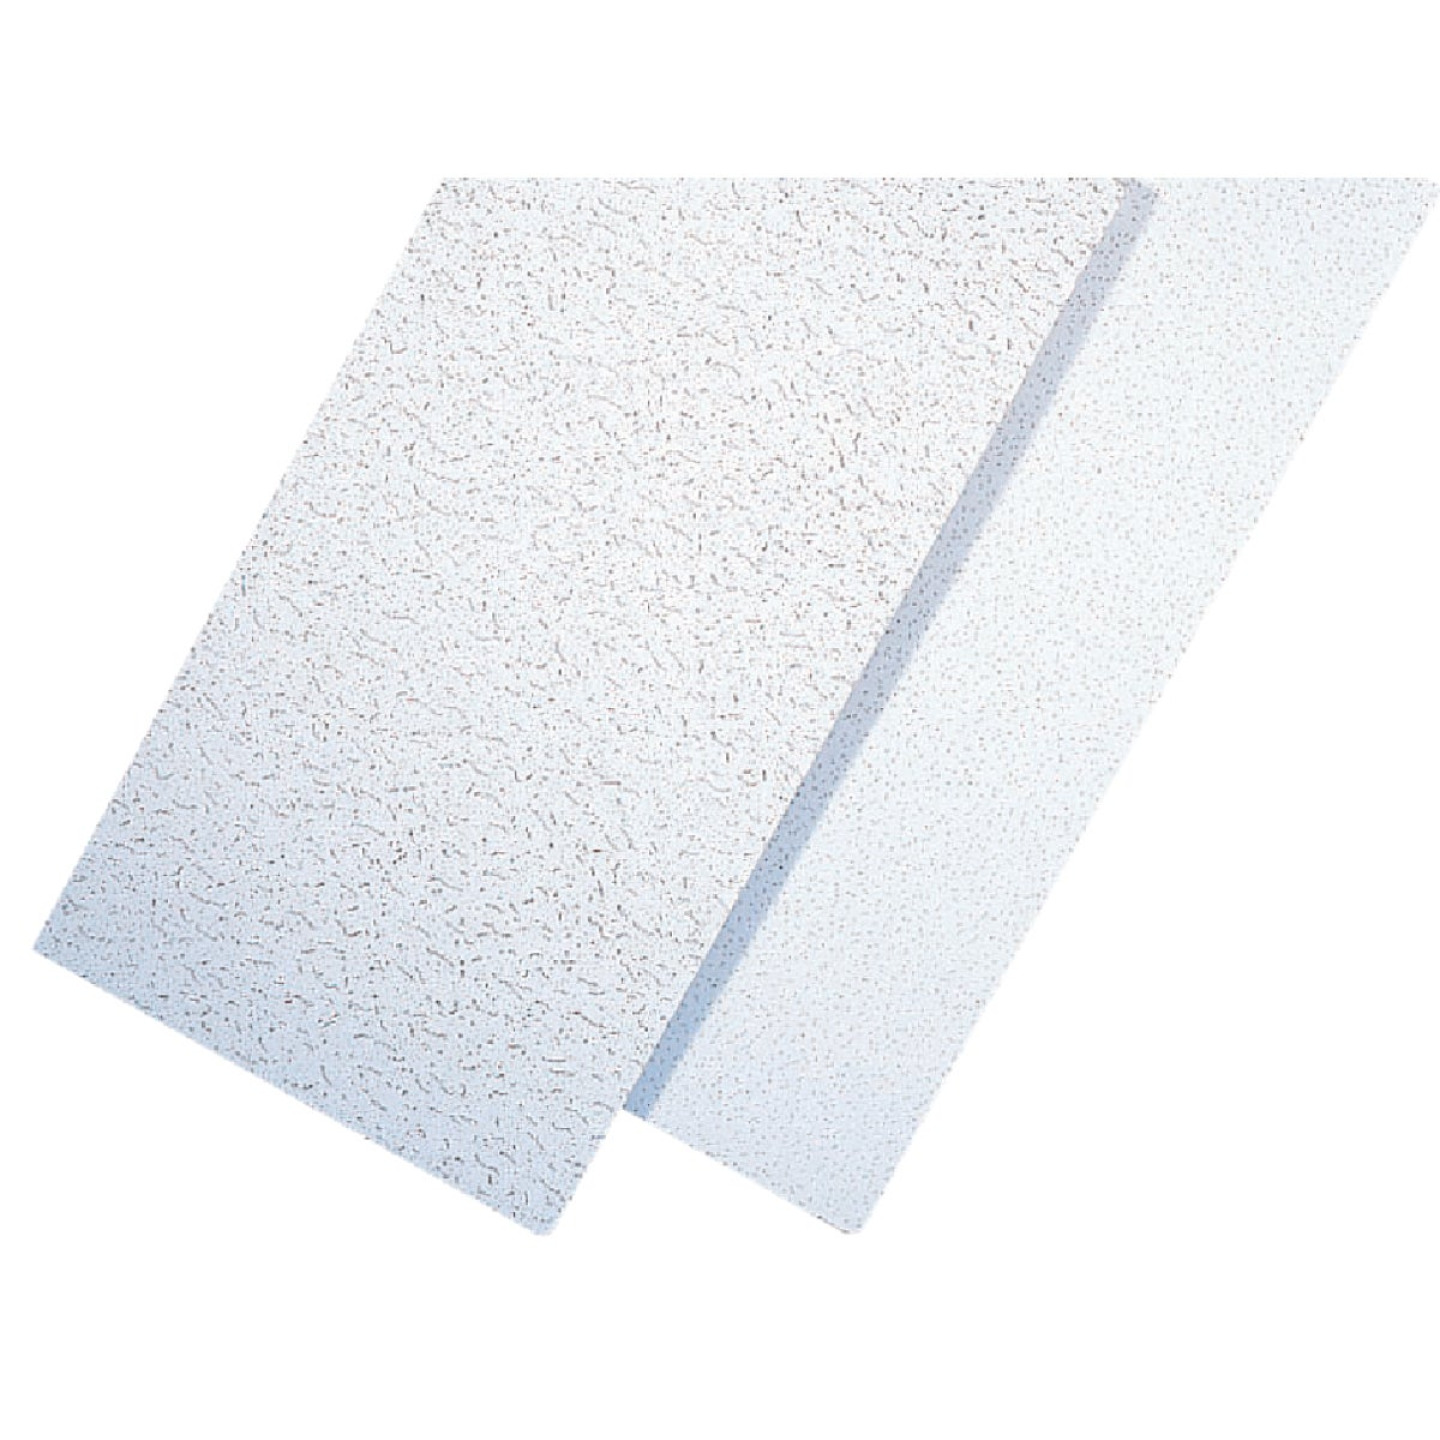 Fifth Avenue 2 Ft. x 4 Ft. White Mineral Fiber Square Edge Ceiling Tile (8-Count) Image 7